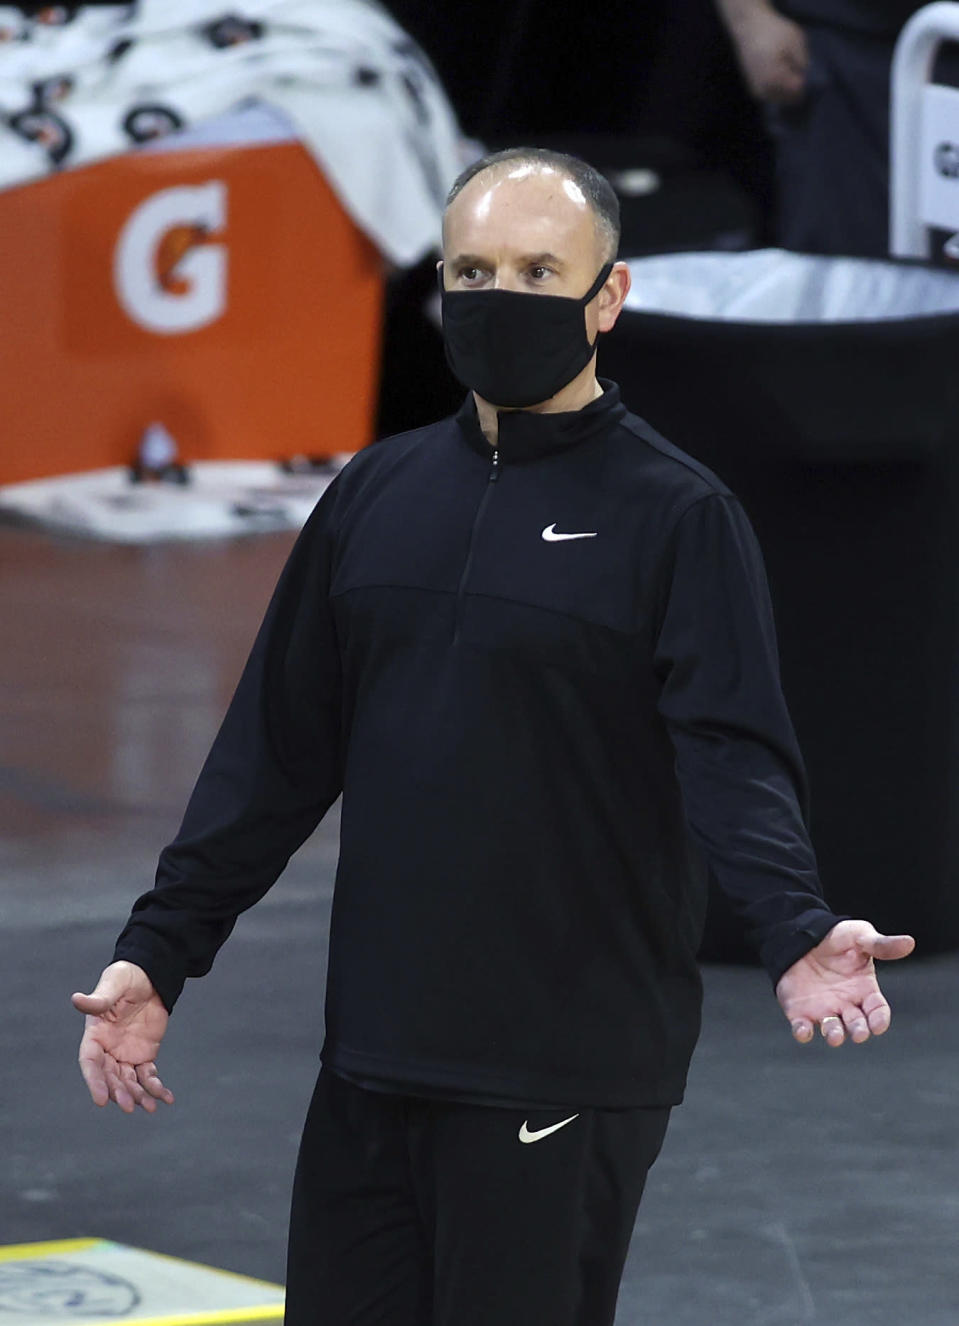 Oregon State head coach Scott Rueck talks with an official during an NCAA college basketball game in the first round of the Pac-12 women's tournament Wednesday, March 3, 2021, in Las Vegas. (AP Photo/Isaac Brekken)